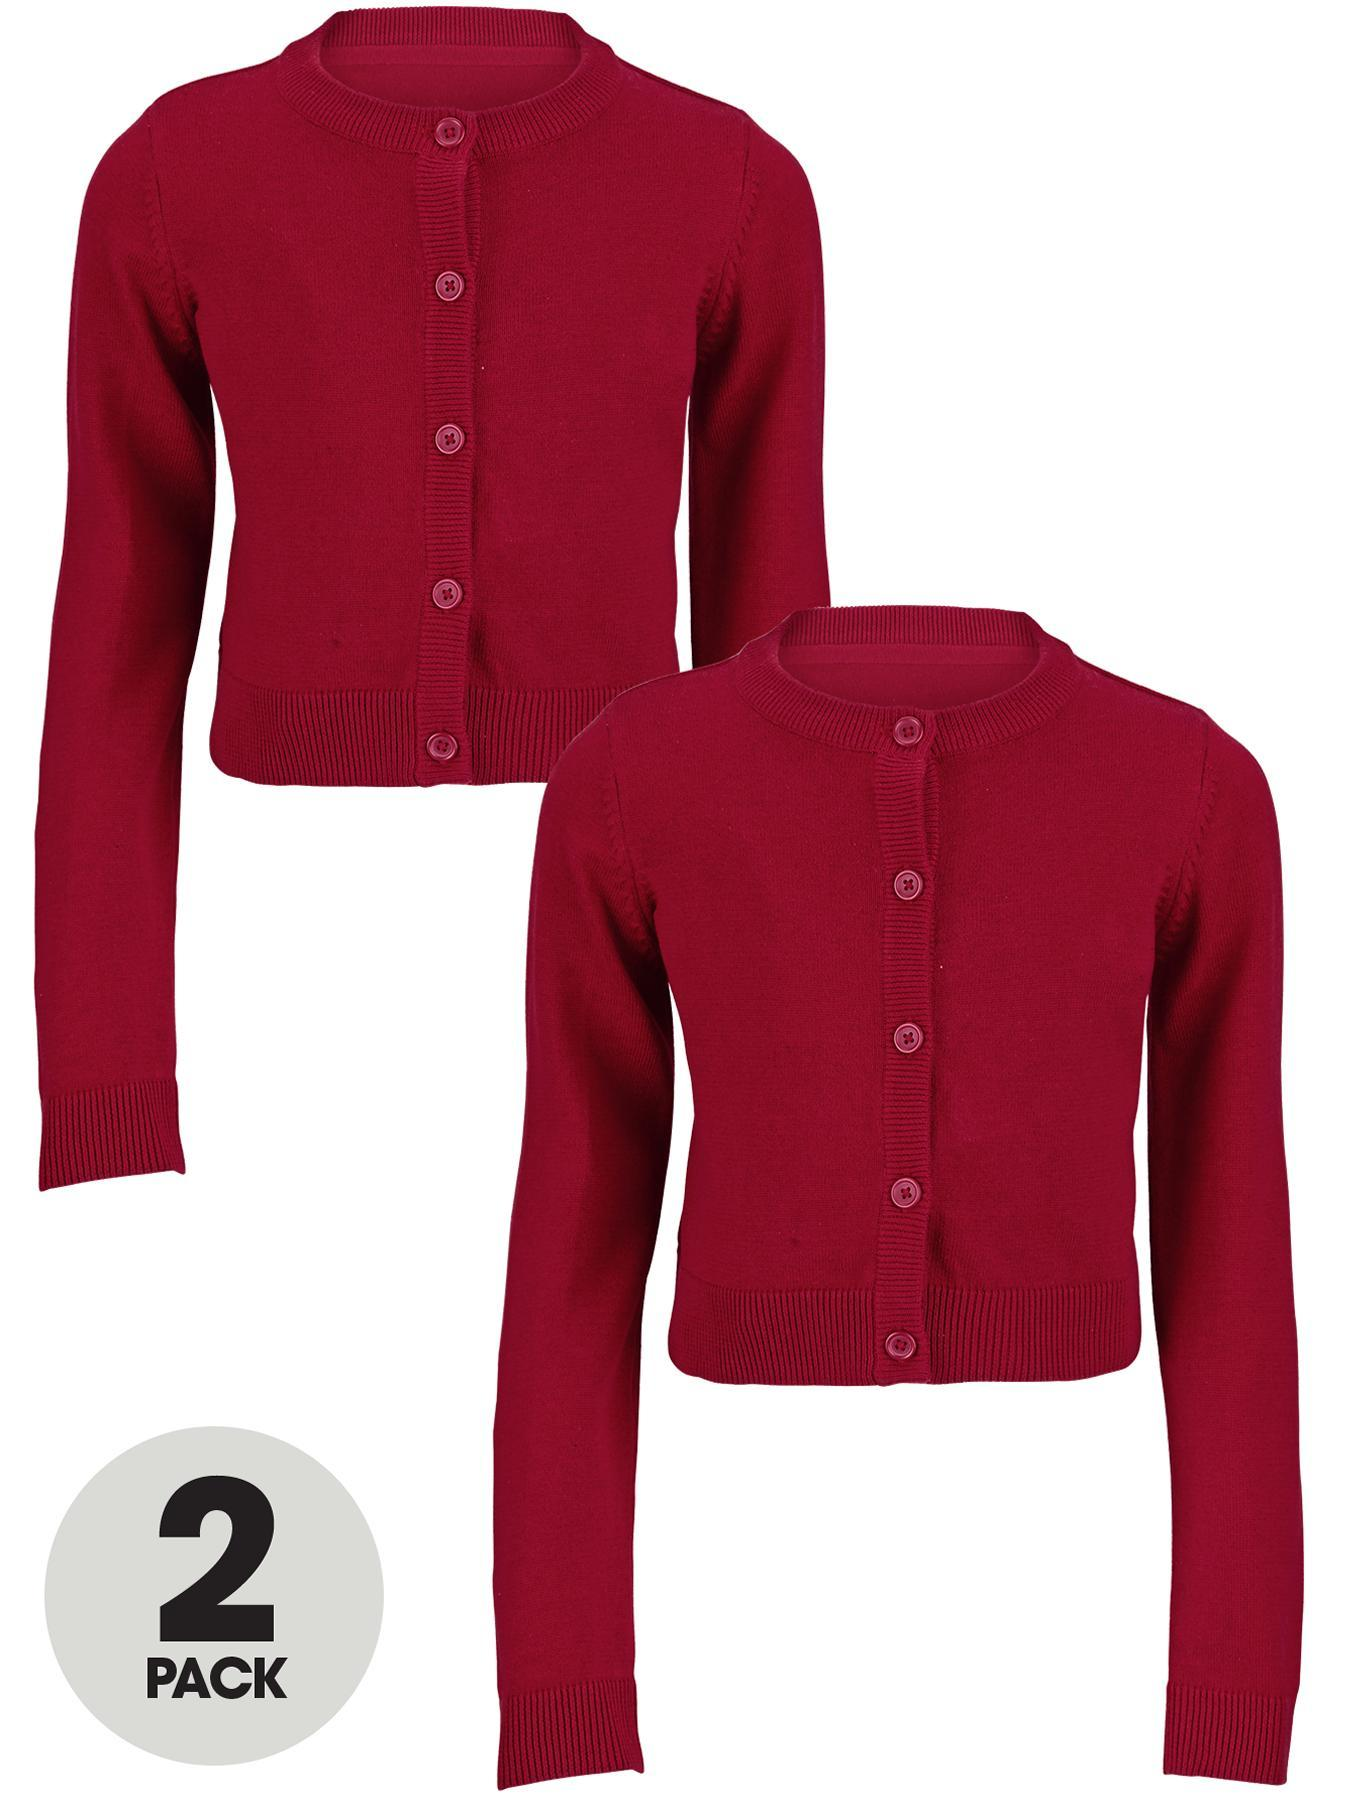 Essential Cotton Cardigan (2 Pack), Black,Grey,Navy,Red,Green at Littlewoods